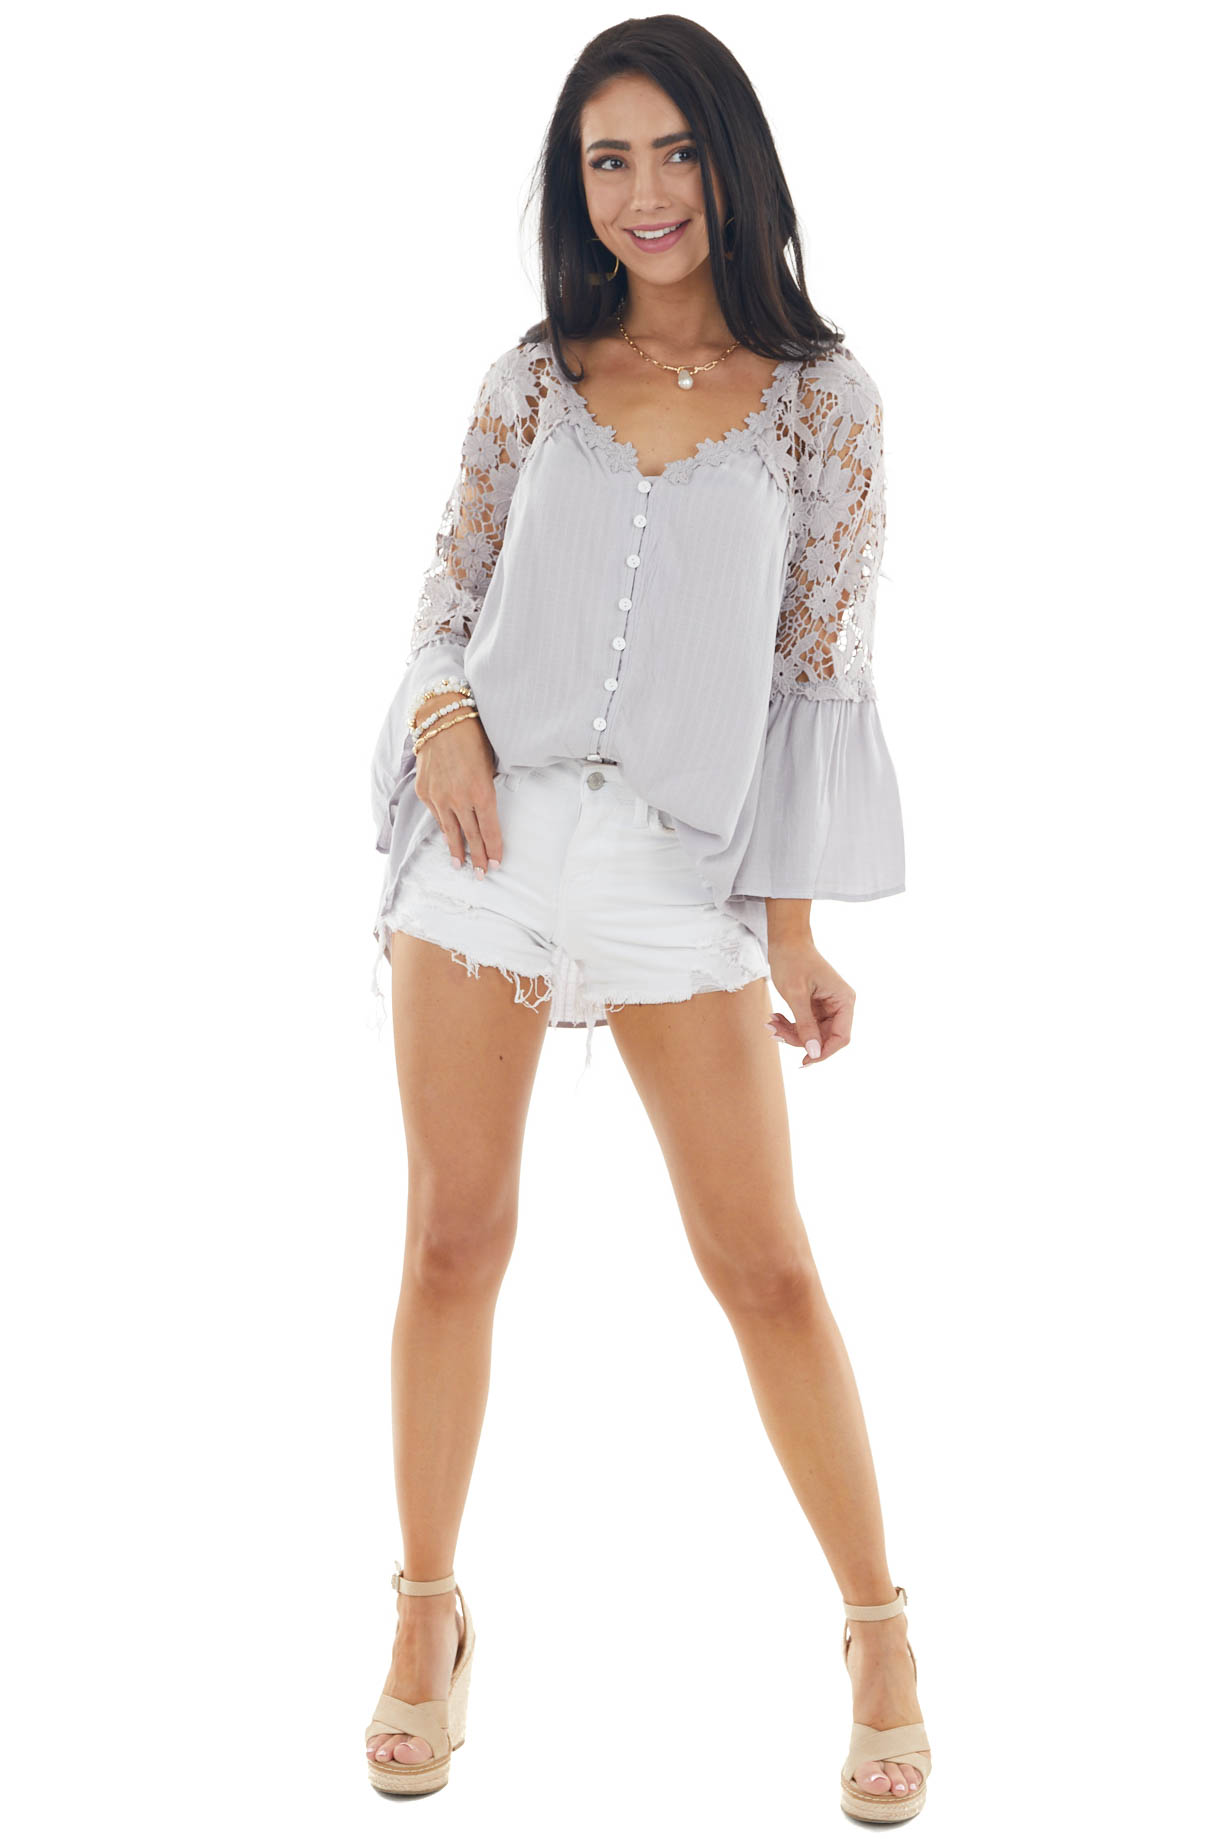 Dove V Neck Blouse with Buttons and Crocheted Lace Details